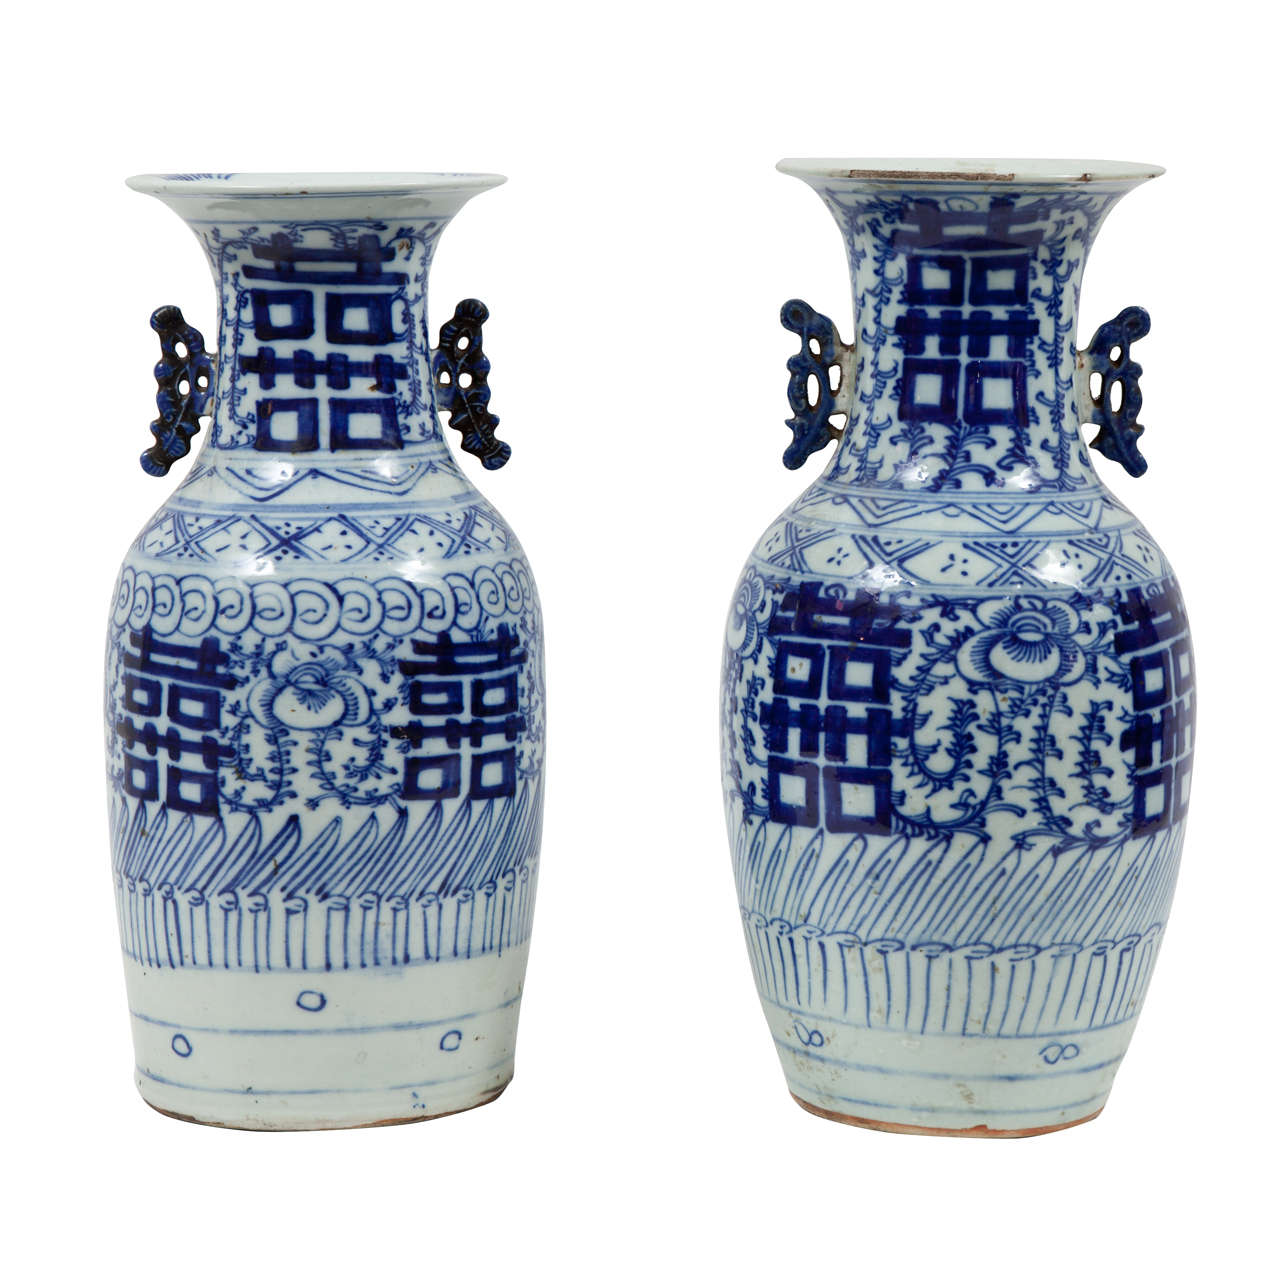 Pair Of 19th Century Chinese Blue And White Porcelain Vases For